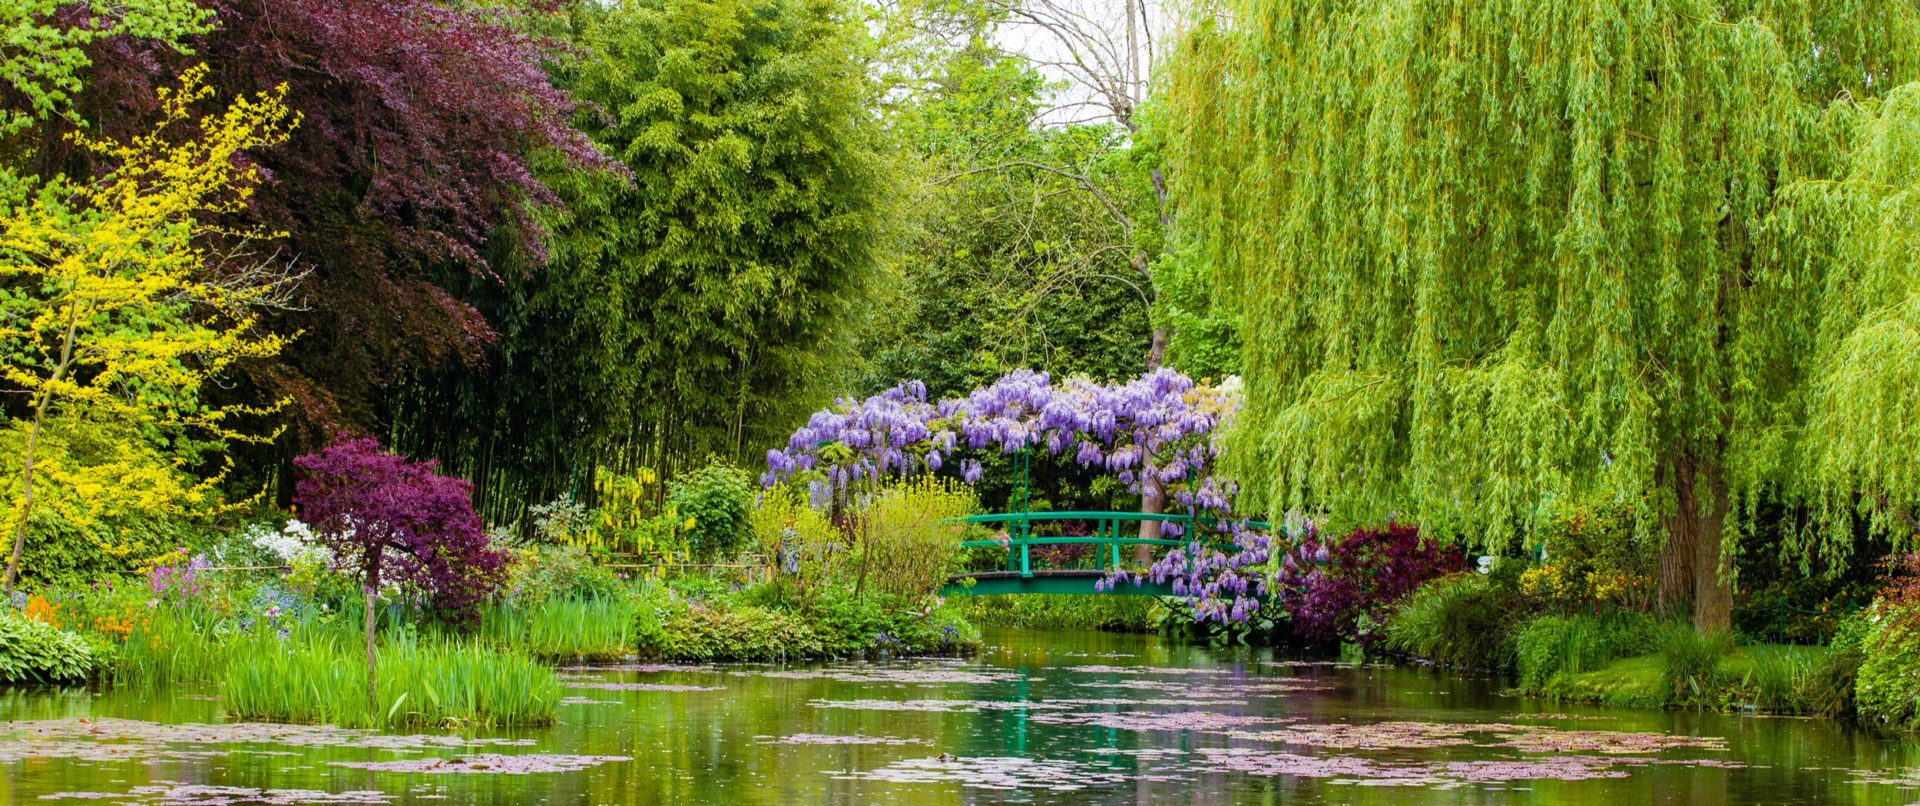 impressionism-giverny-garden-family-private-activity1